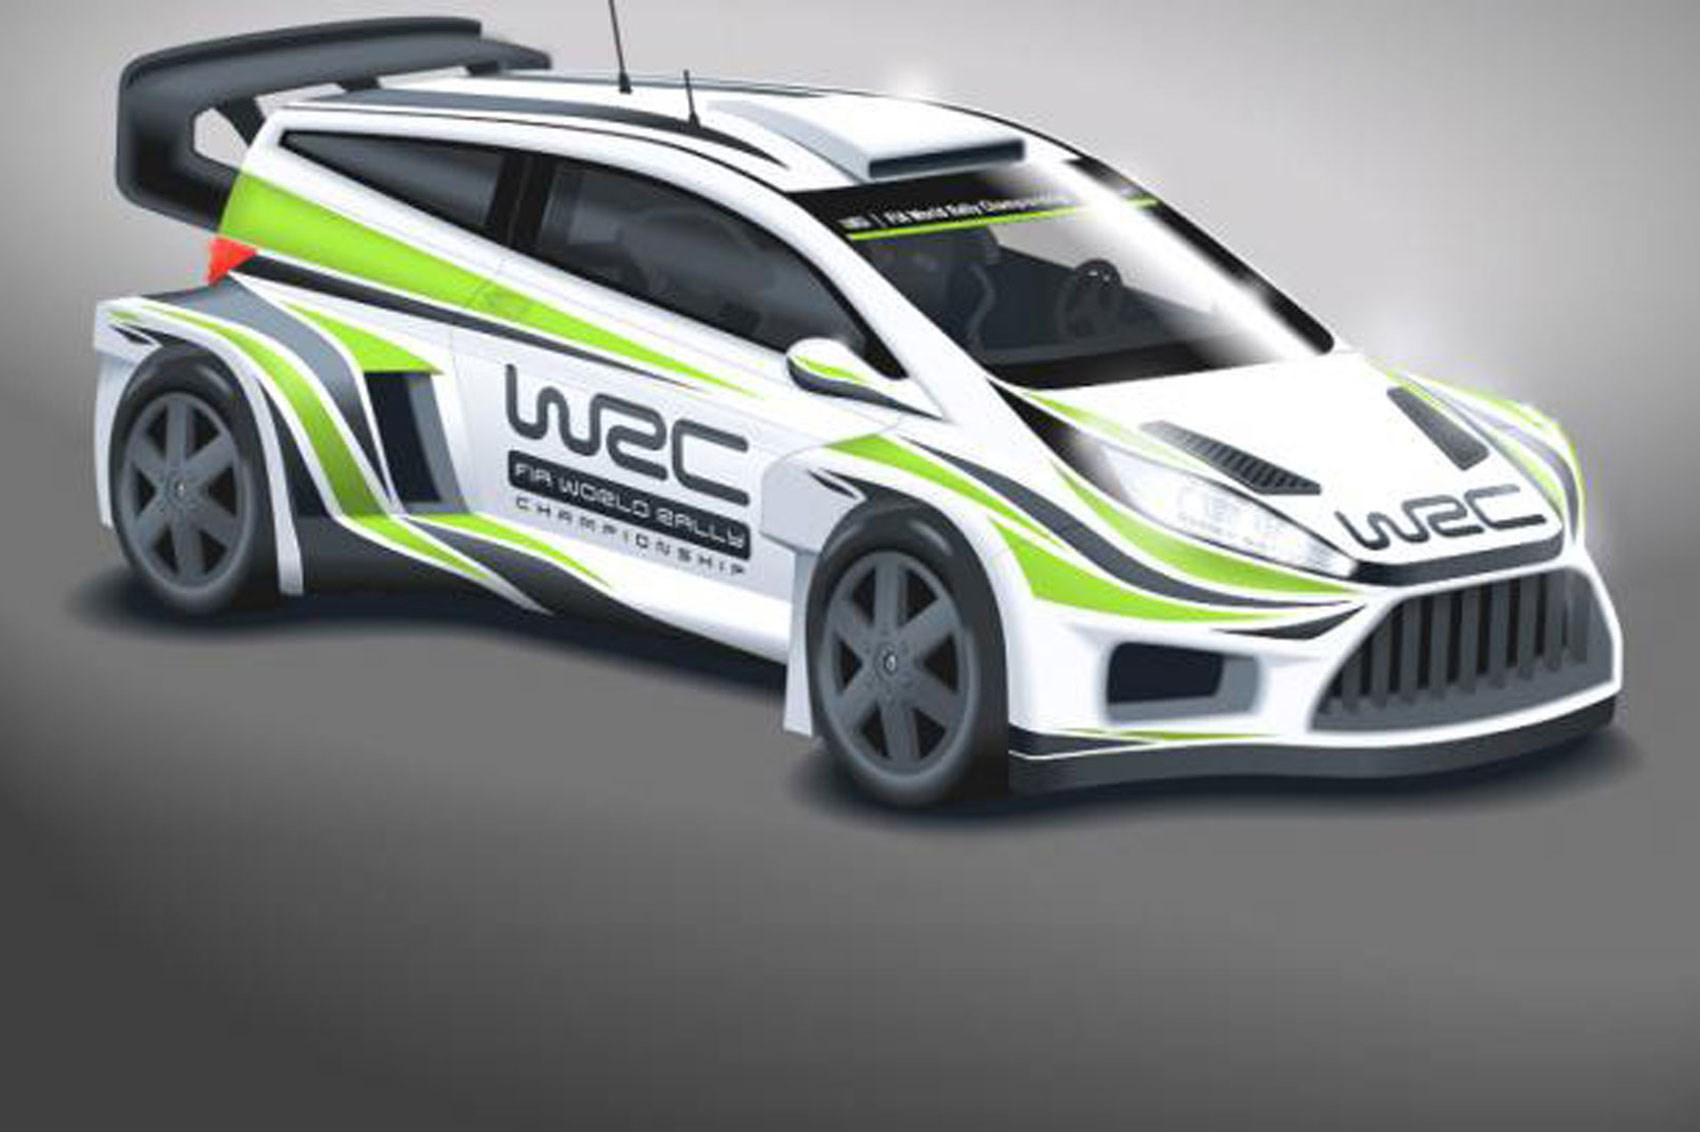 Ultrablogus  Marvellous Wild New Look For Wrc Cars In  By Car Magazine With Magnificent Wrc Cars Will Get Wider Bodies Bigger Wings And More Power For  With Enchanting  Honda Civic Coupe Interior Also Interior  In Addition Audi A Avant Interior And Mercedes Benz Sprinter Van Interior As Well As Passat  Interior Additionally Jeep Grand Cherokee Interior Dimensions From Carmagazinecouk With Ultrablogus  Magnificent Wild New Look For Wrc Cars In  By Car Magazine With Enchanting Wrc Cars Will Get Wider Bodies Bigger Wings And More Power For  And Marvellous  Honda Civic Coupe Interior Also Interior  In Addition Audi A Avant Interior From Carmagazinecouk